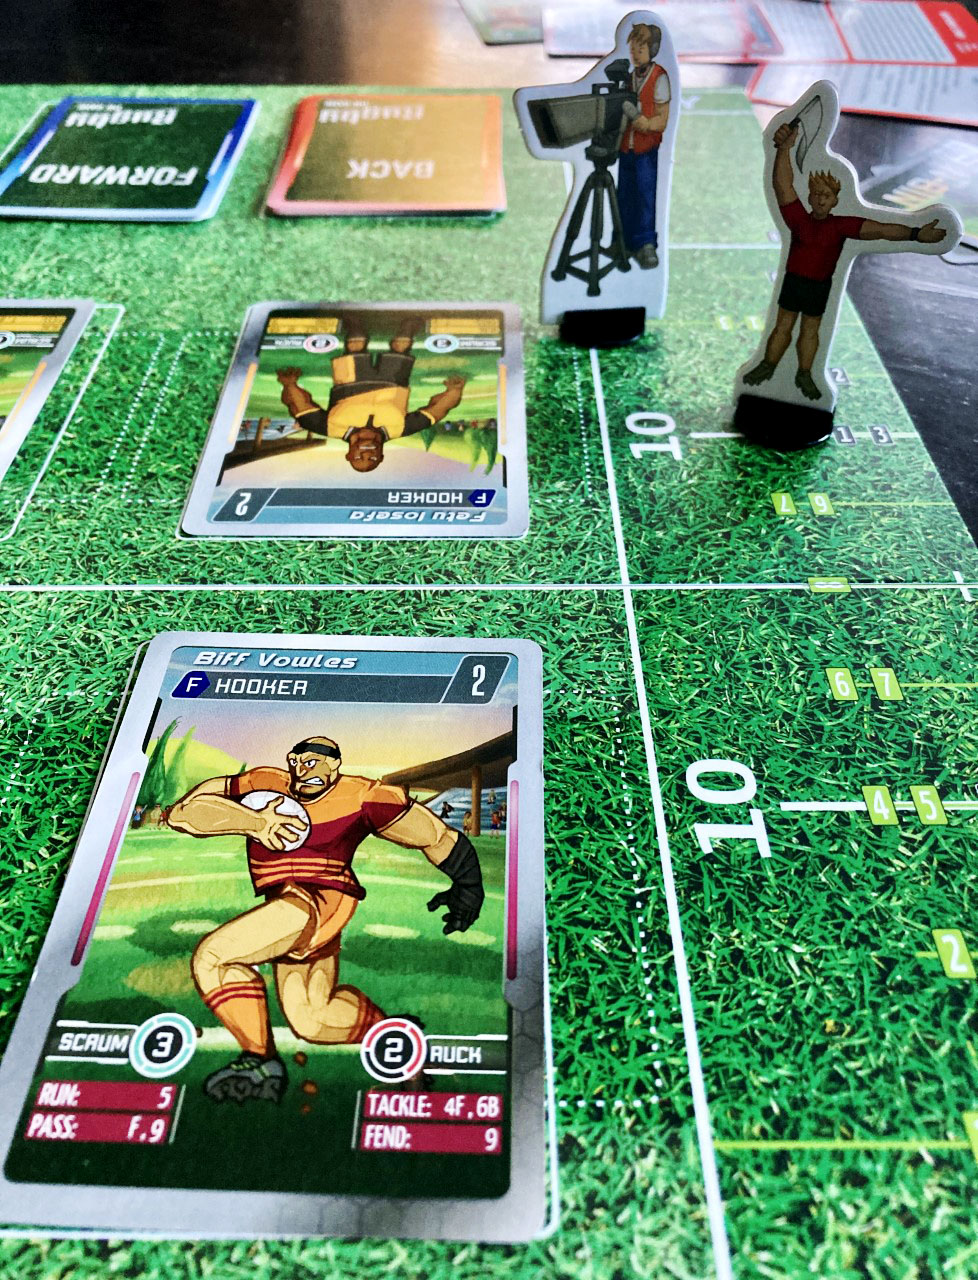 The new table top rugby game created by Christchurch rugby fan Zane Thompson. Photo: Chris Barclay